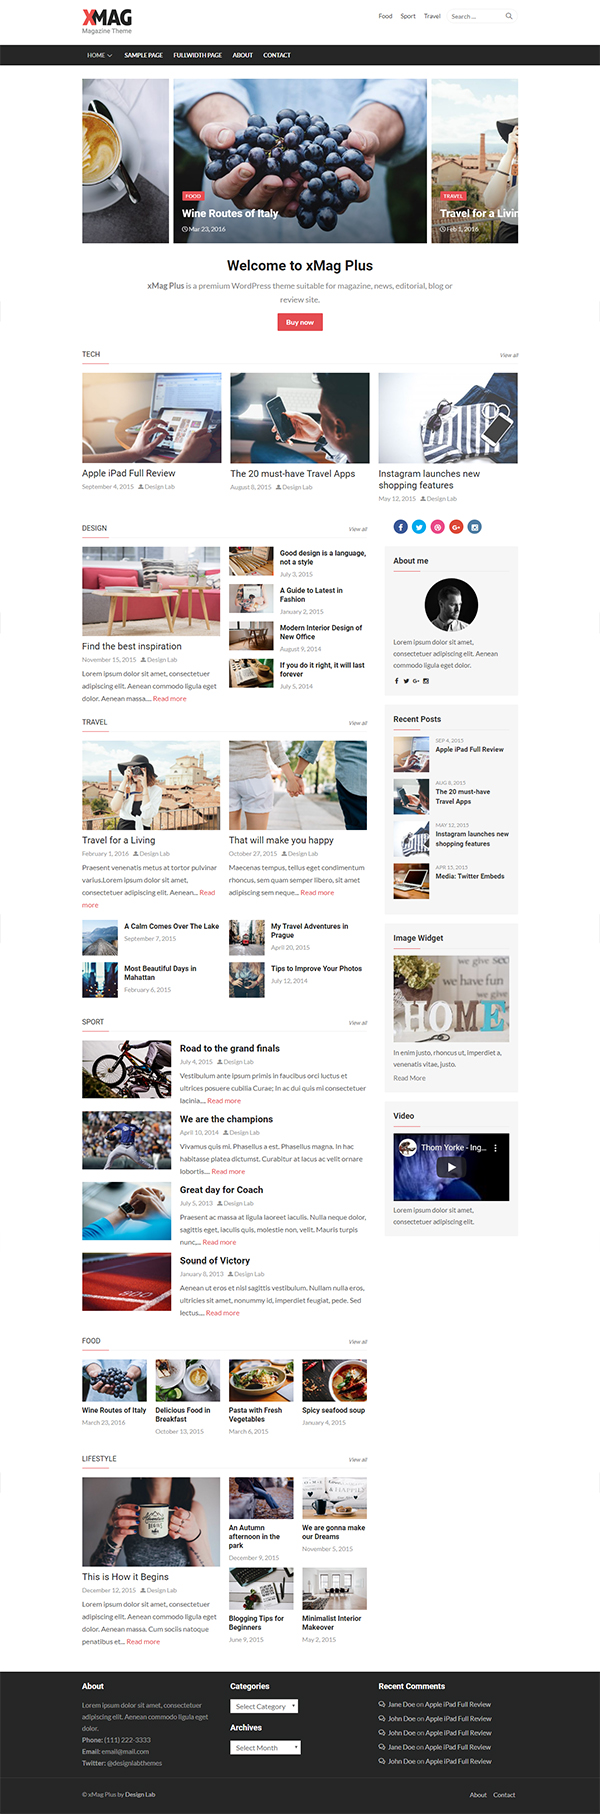 xMag Plus - Magazine WordPress Theme